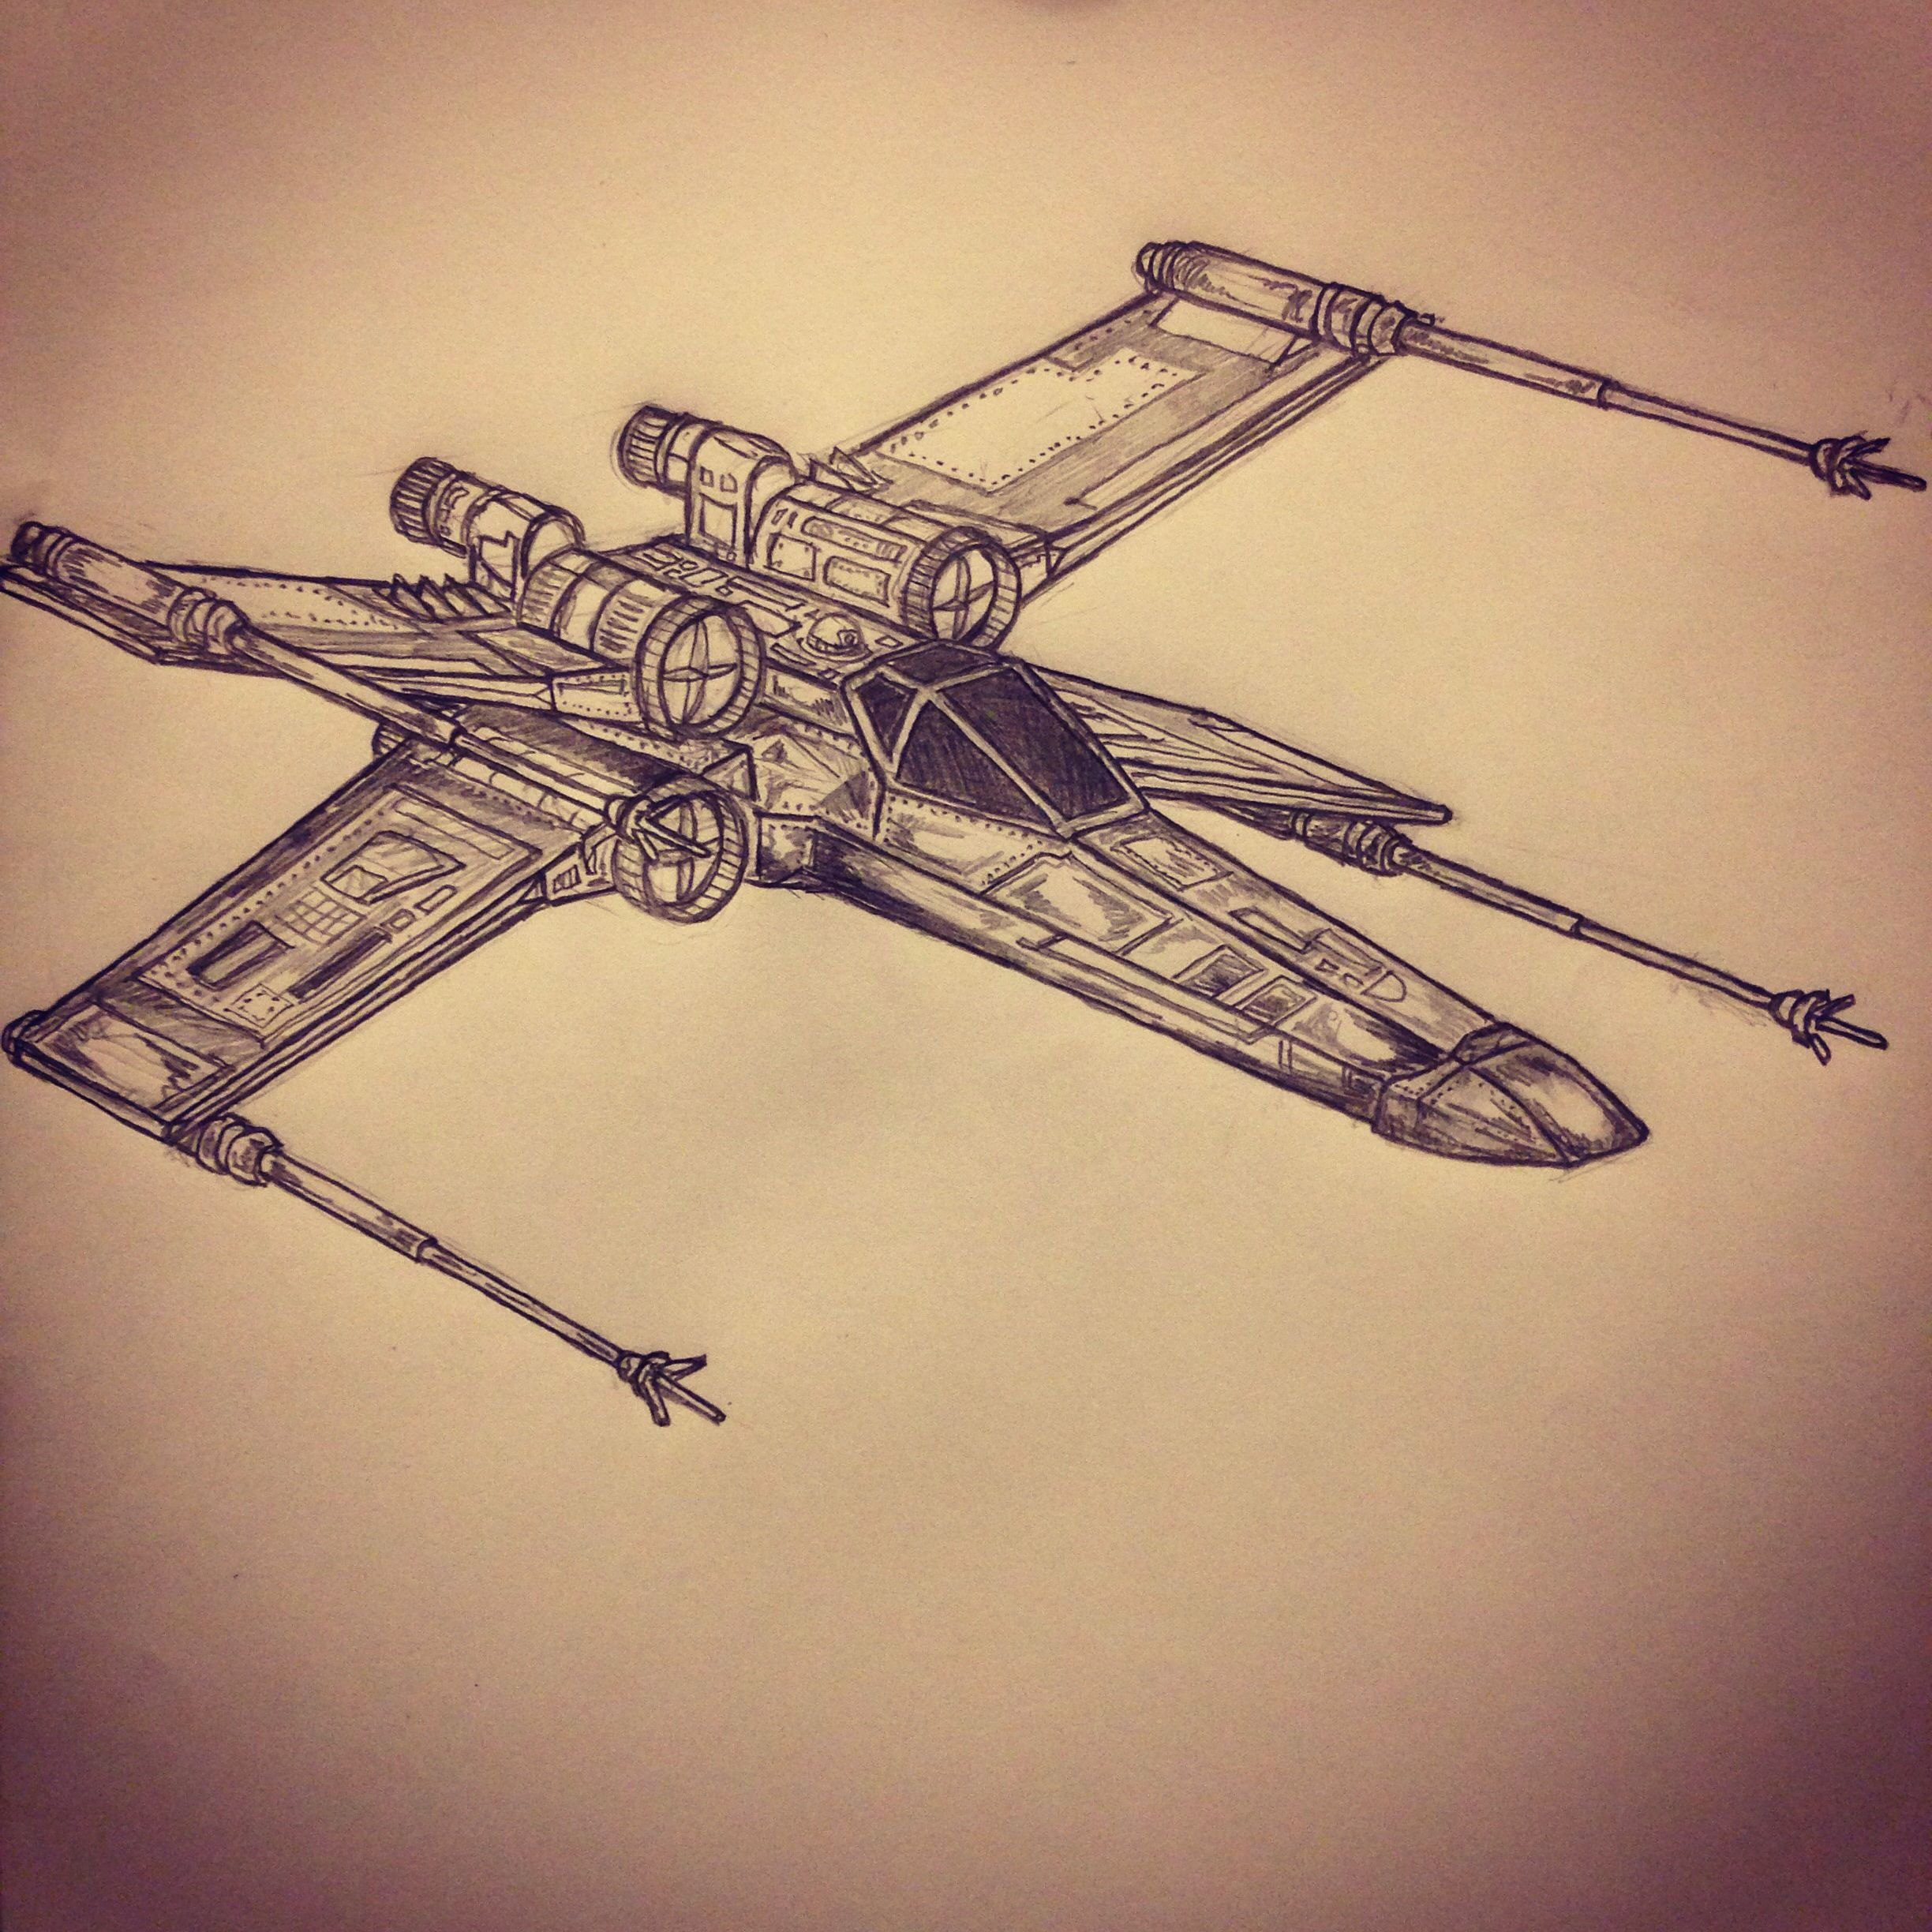 X wing fighter / Star Wars tattoo sketch by , Ranz